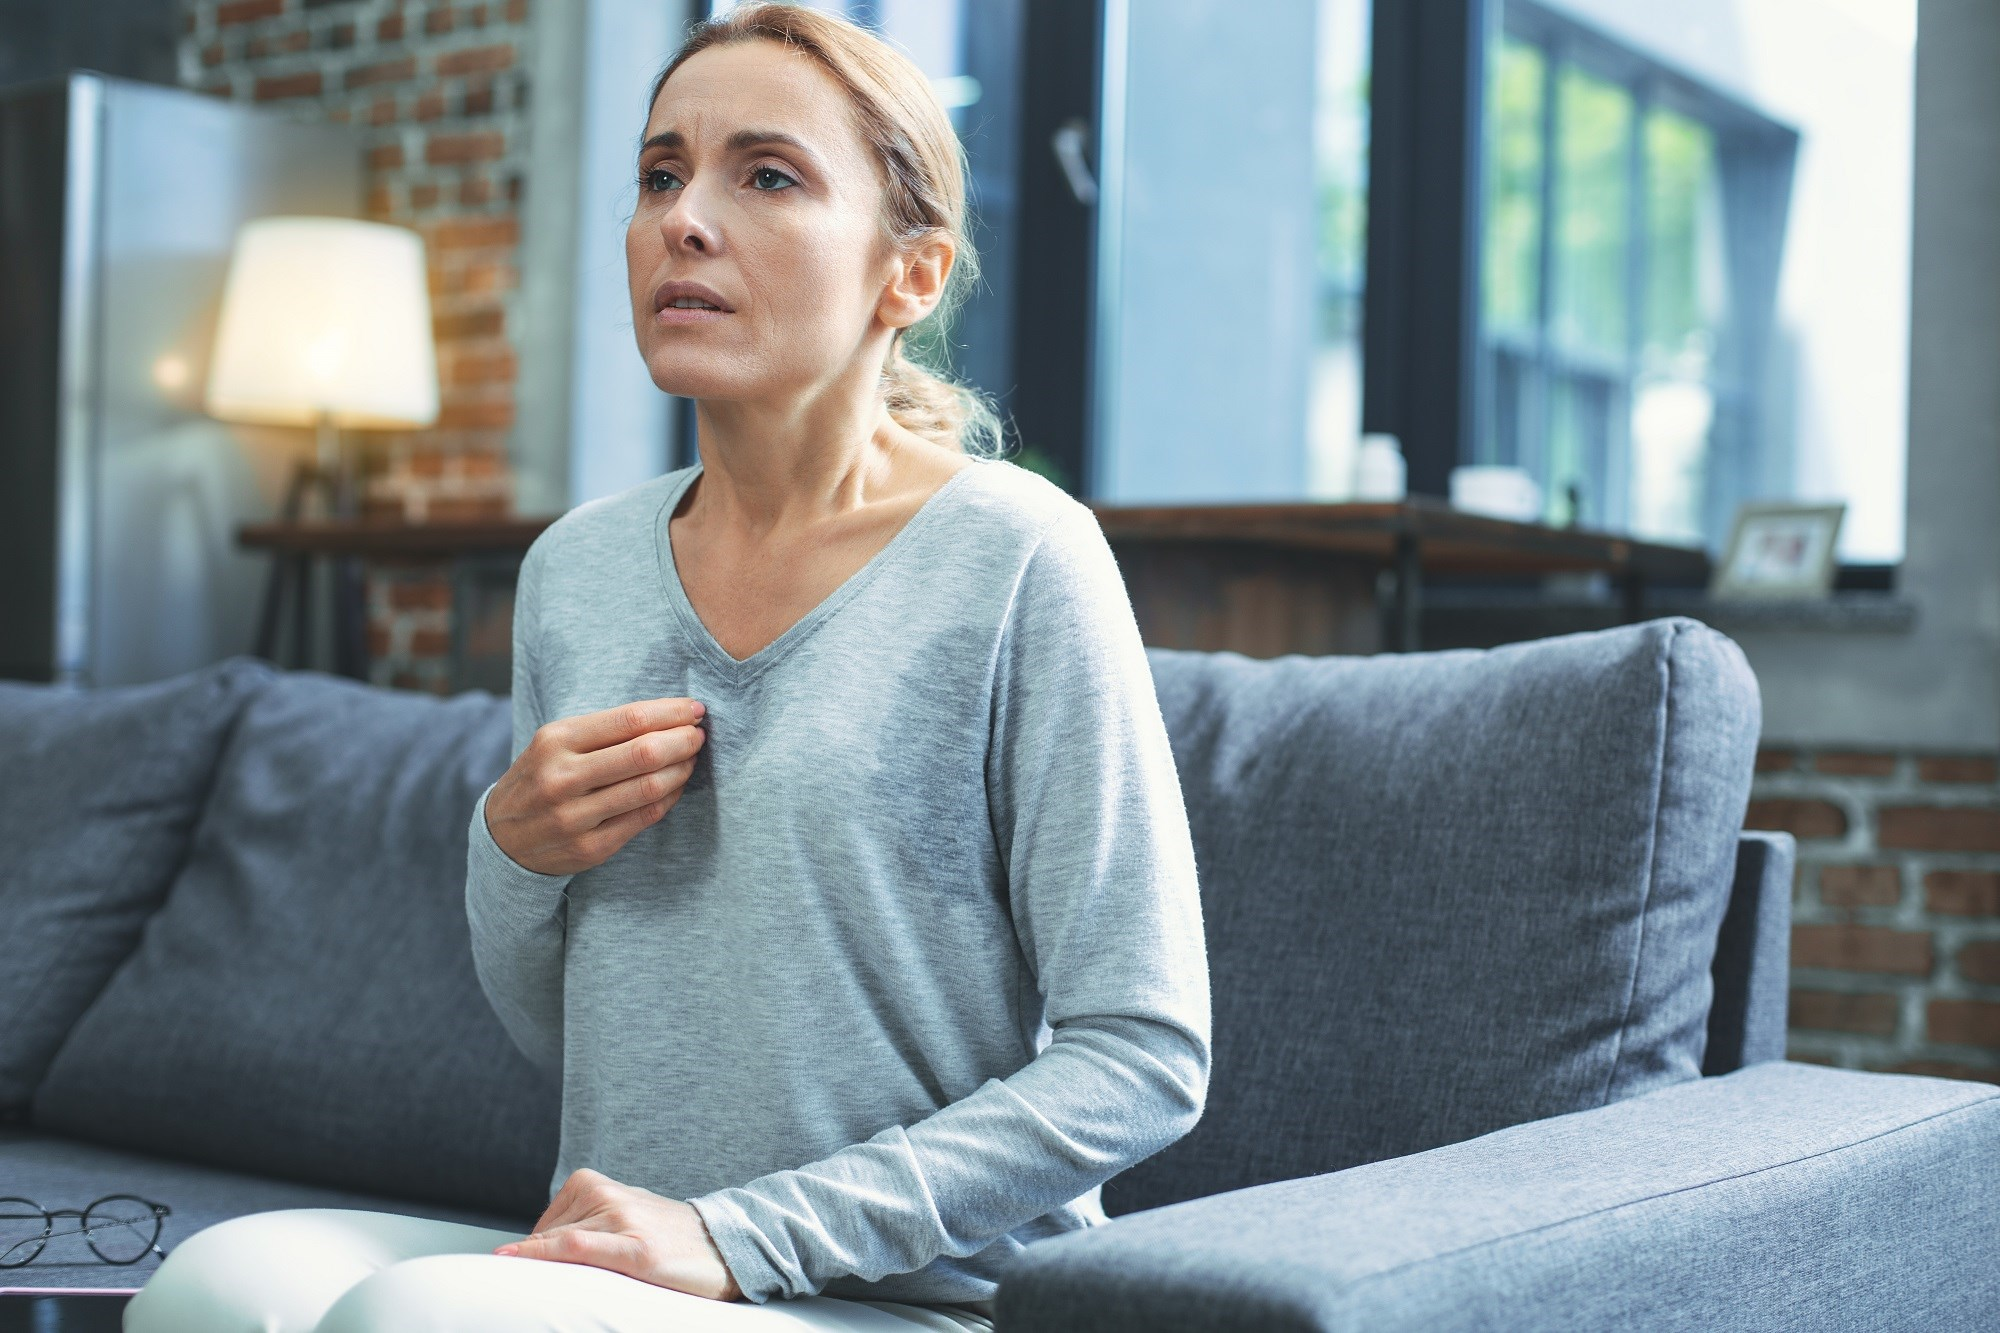 Urinary Incontinence Drug May Reduce Frequency of Hot Flashes